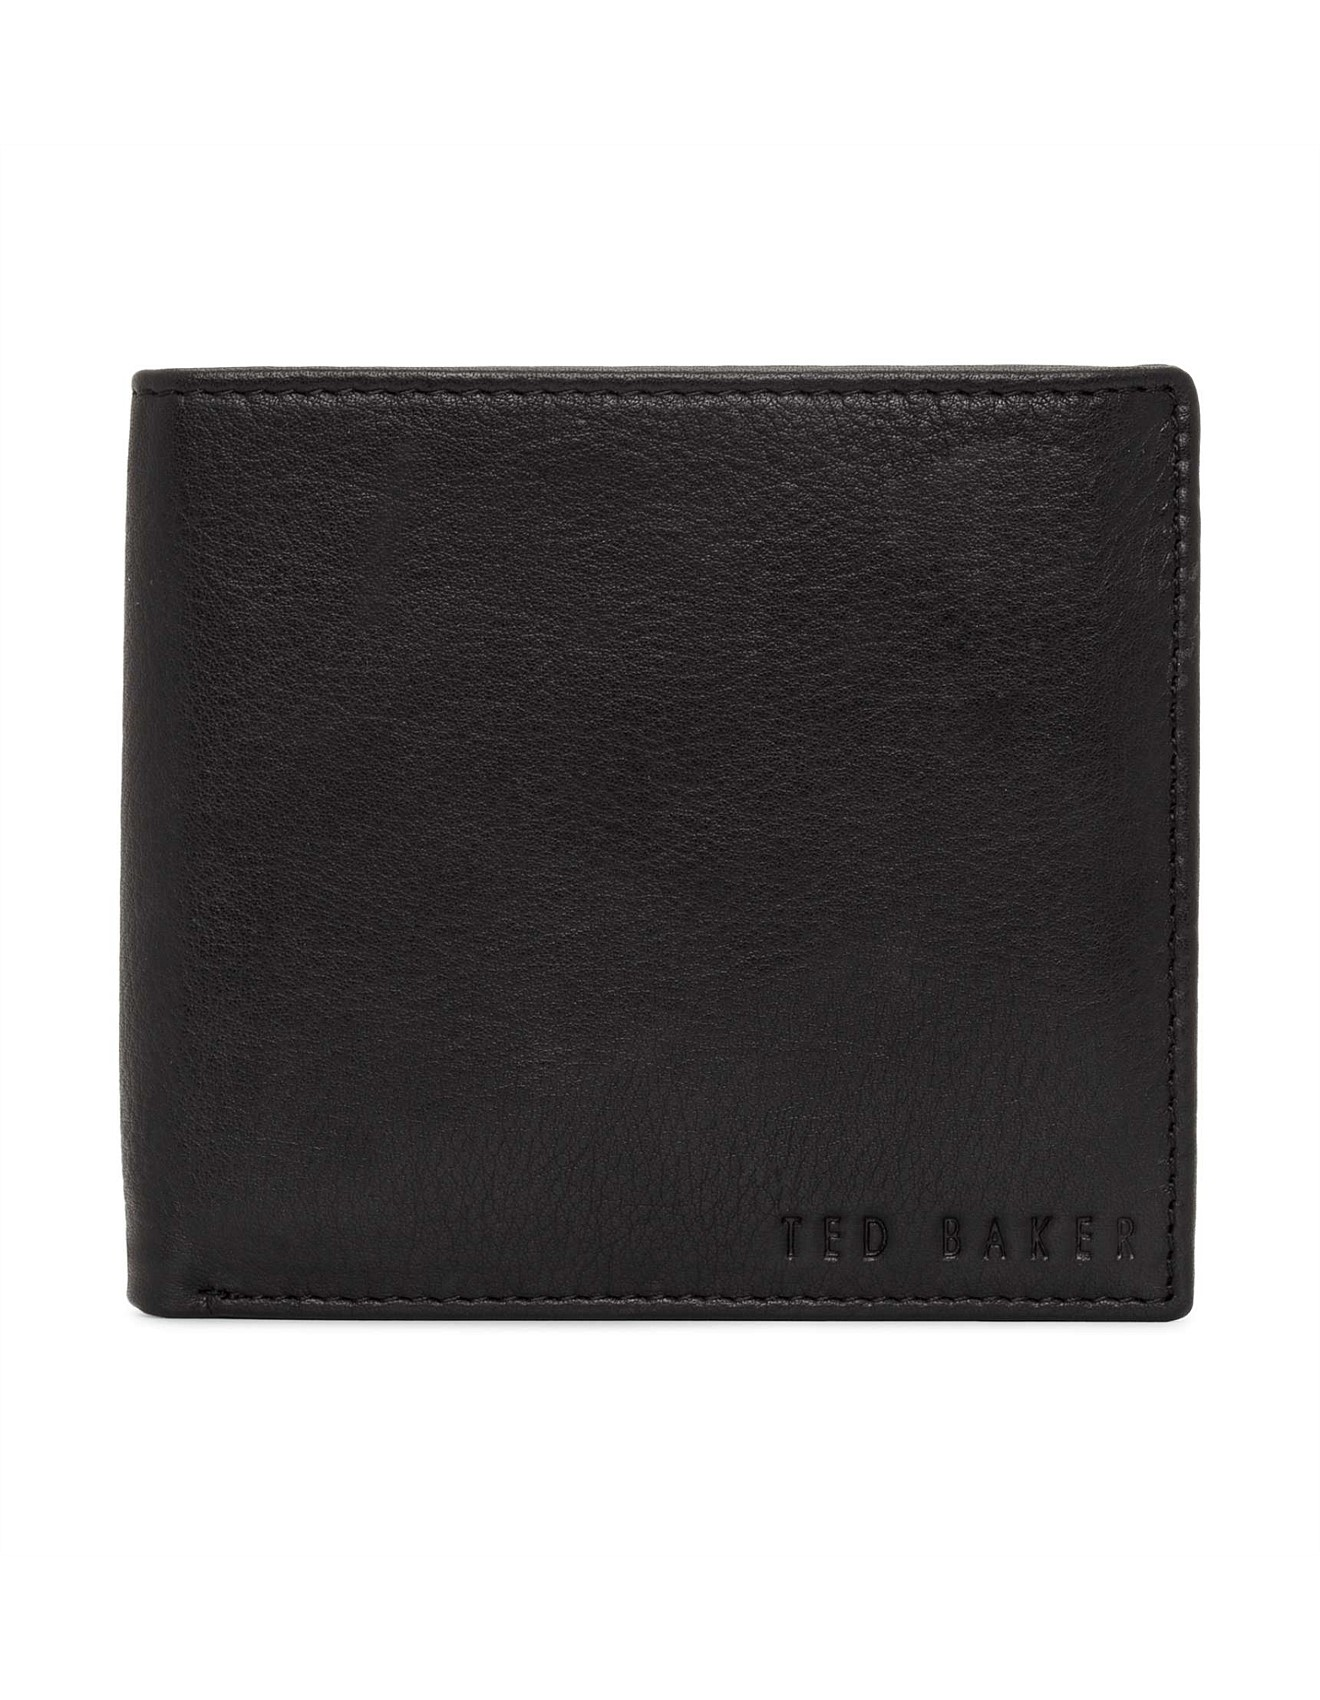 Gift Ideas   Gift Ideas For All Occasions   David Jones